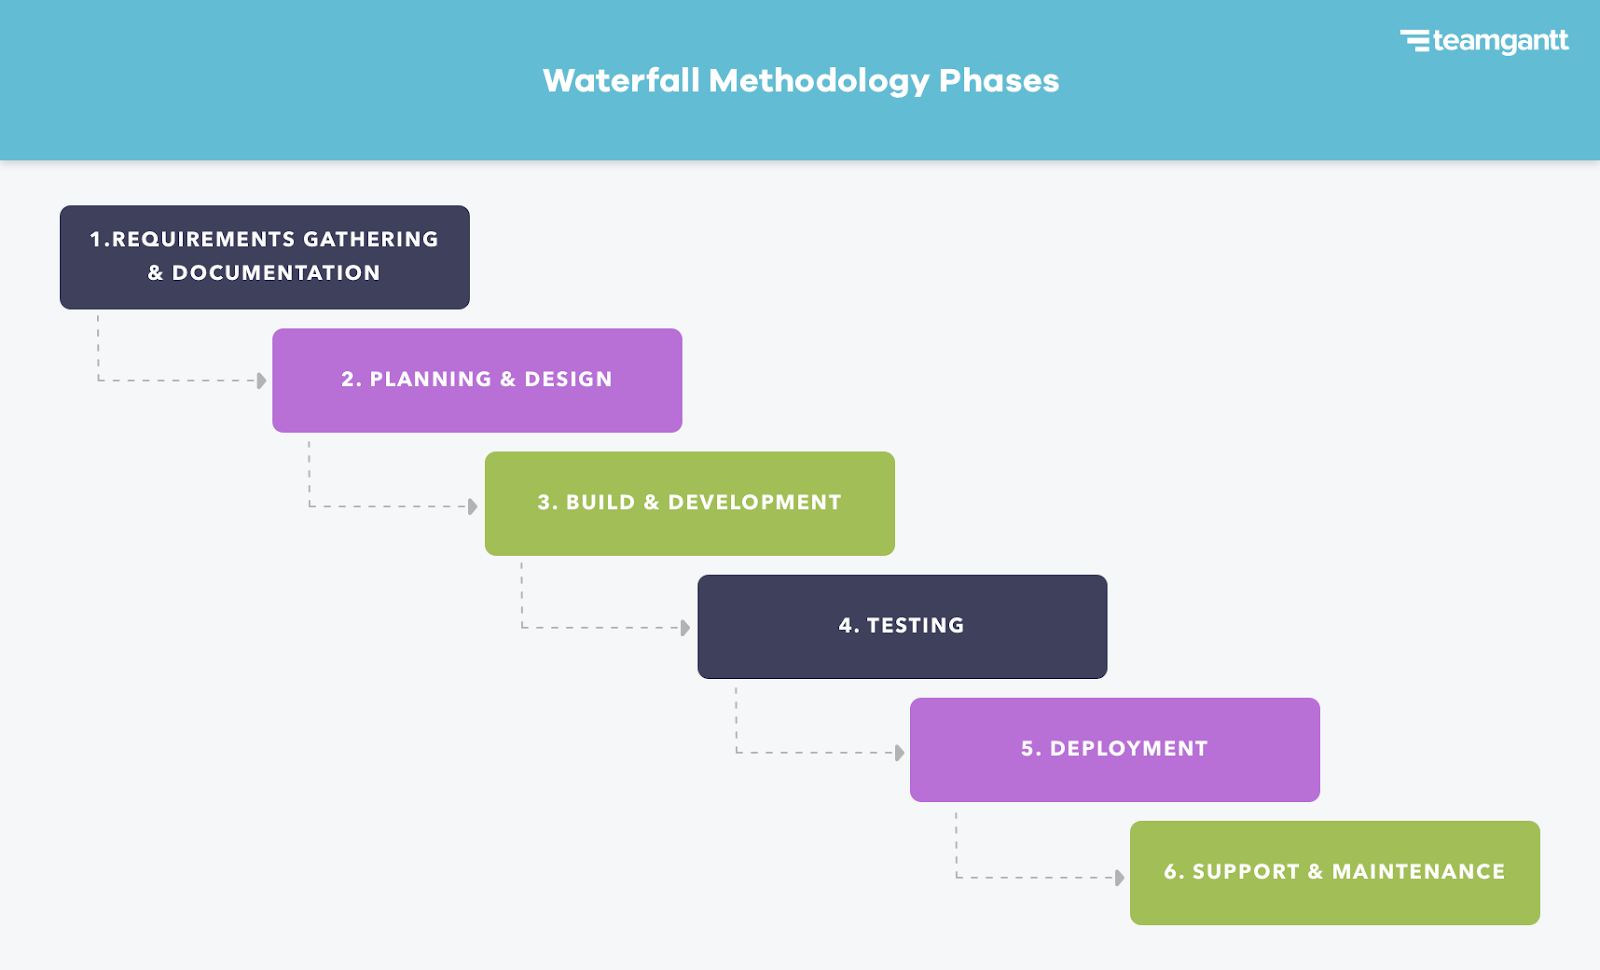 Phases of the Waterfall Methodology